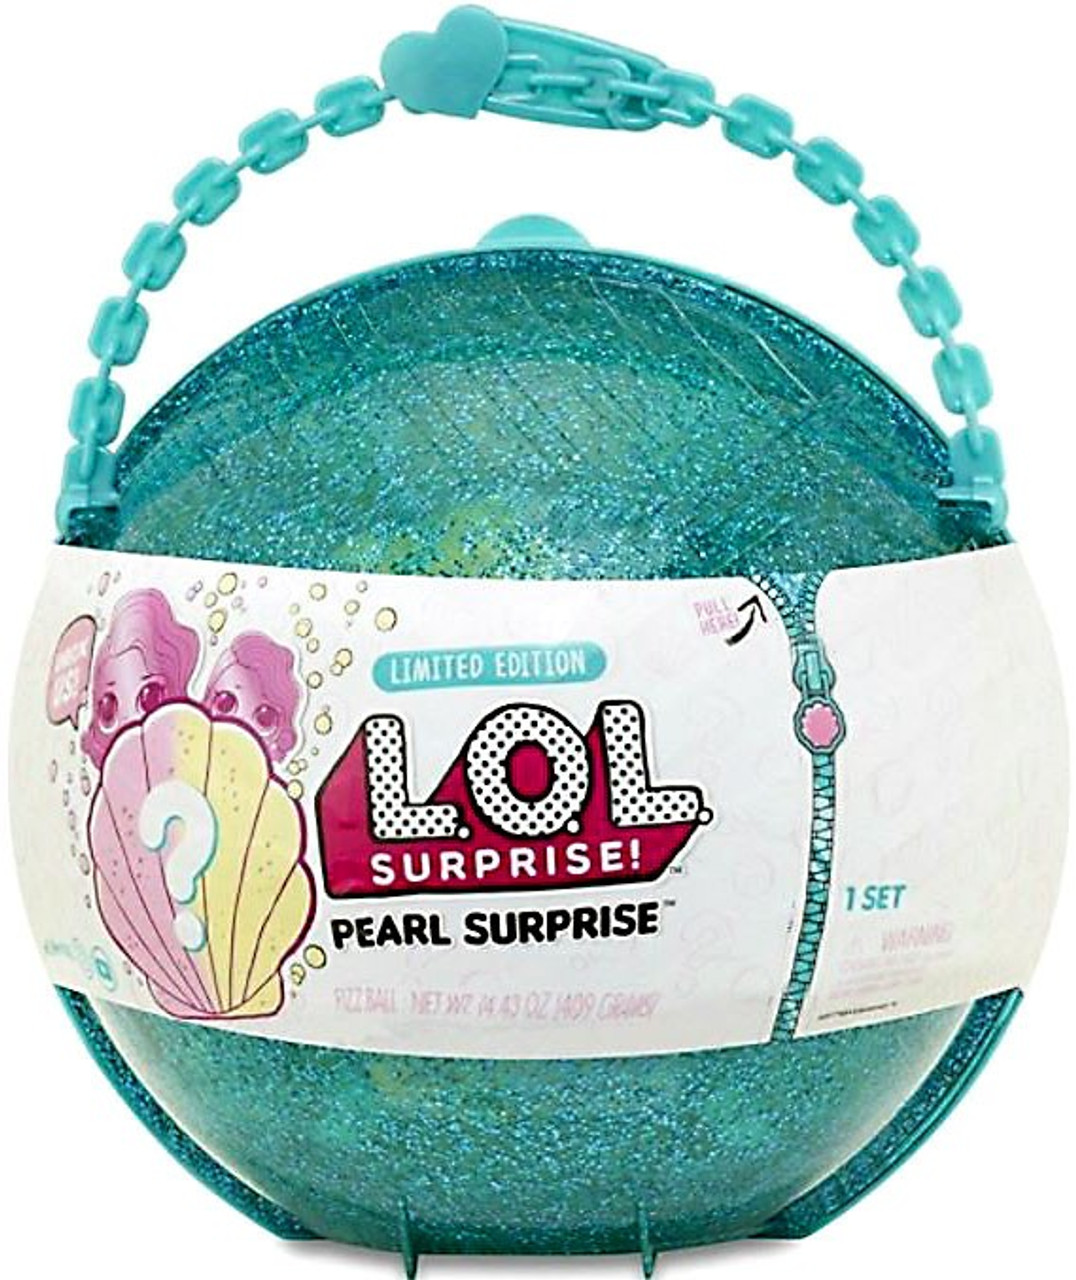 Lol Surprise 2018 Limited Edition Pearl Surprise Mystery